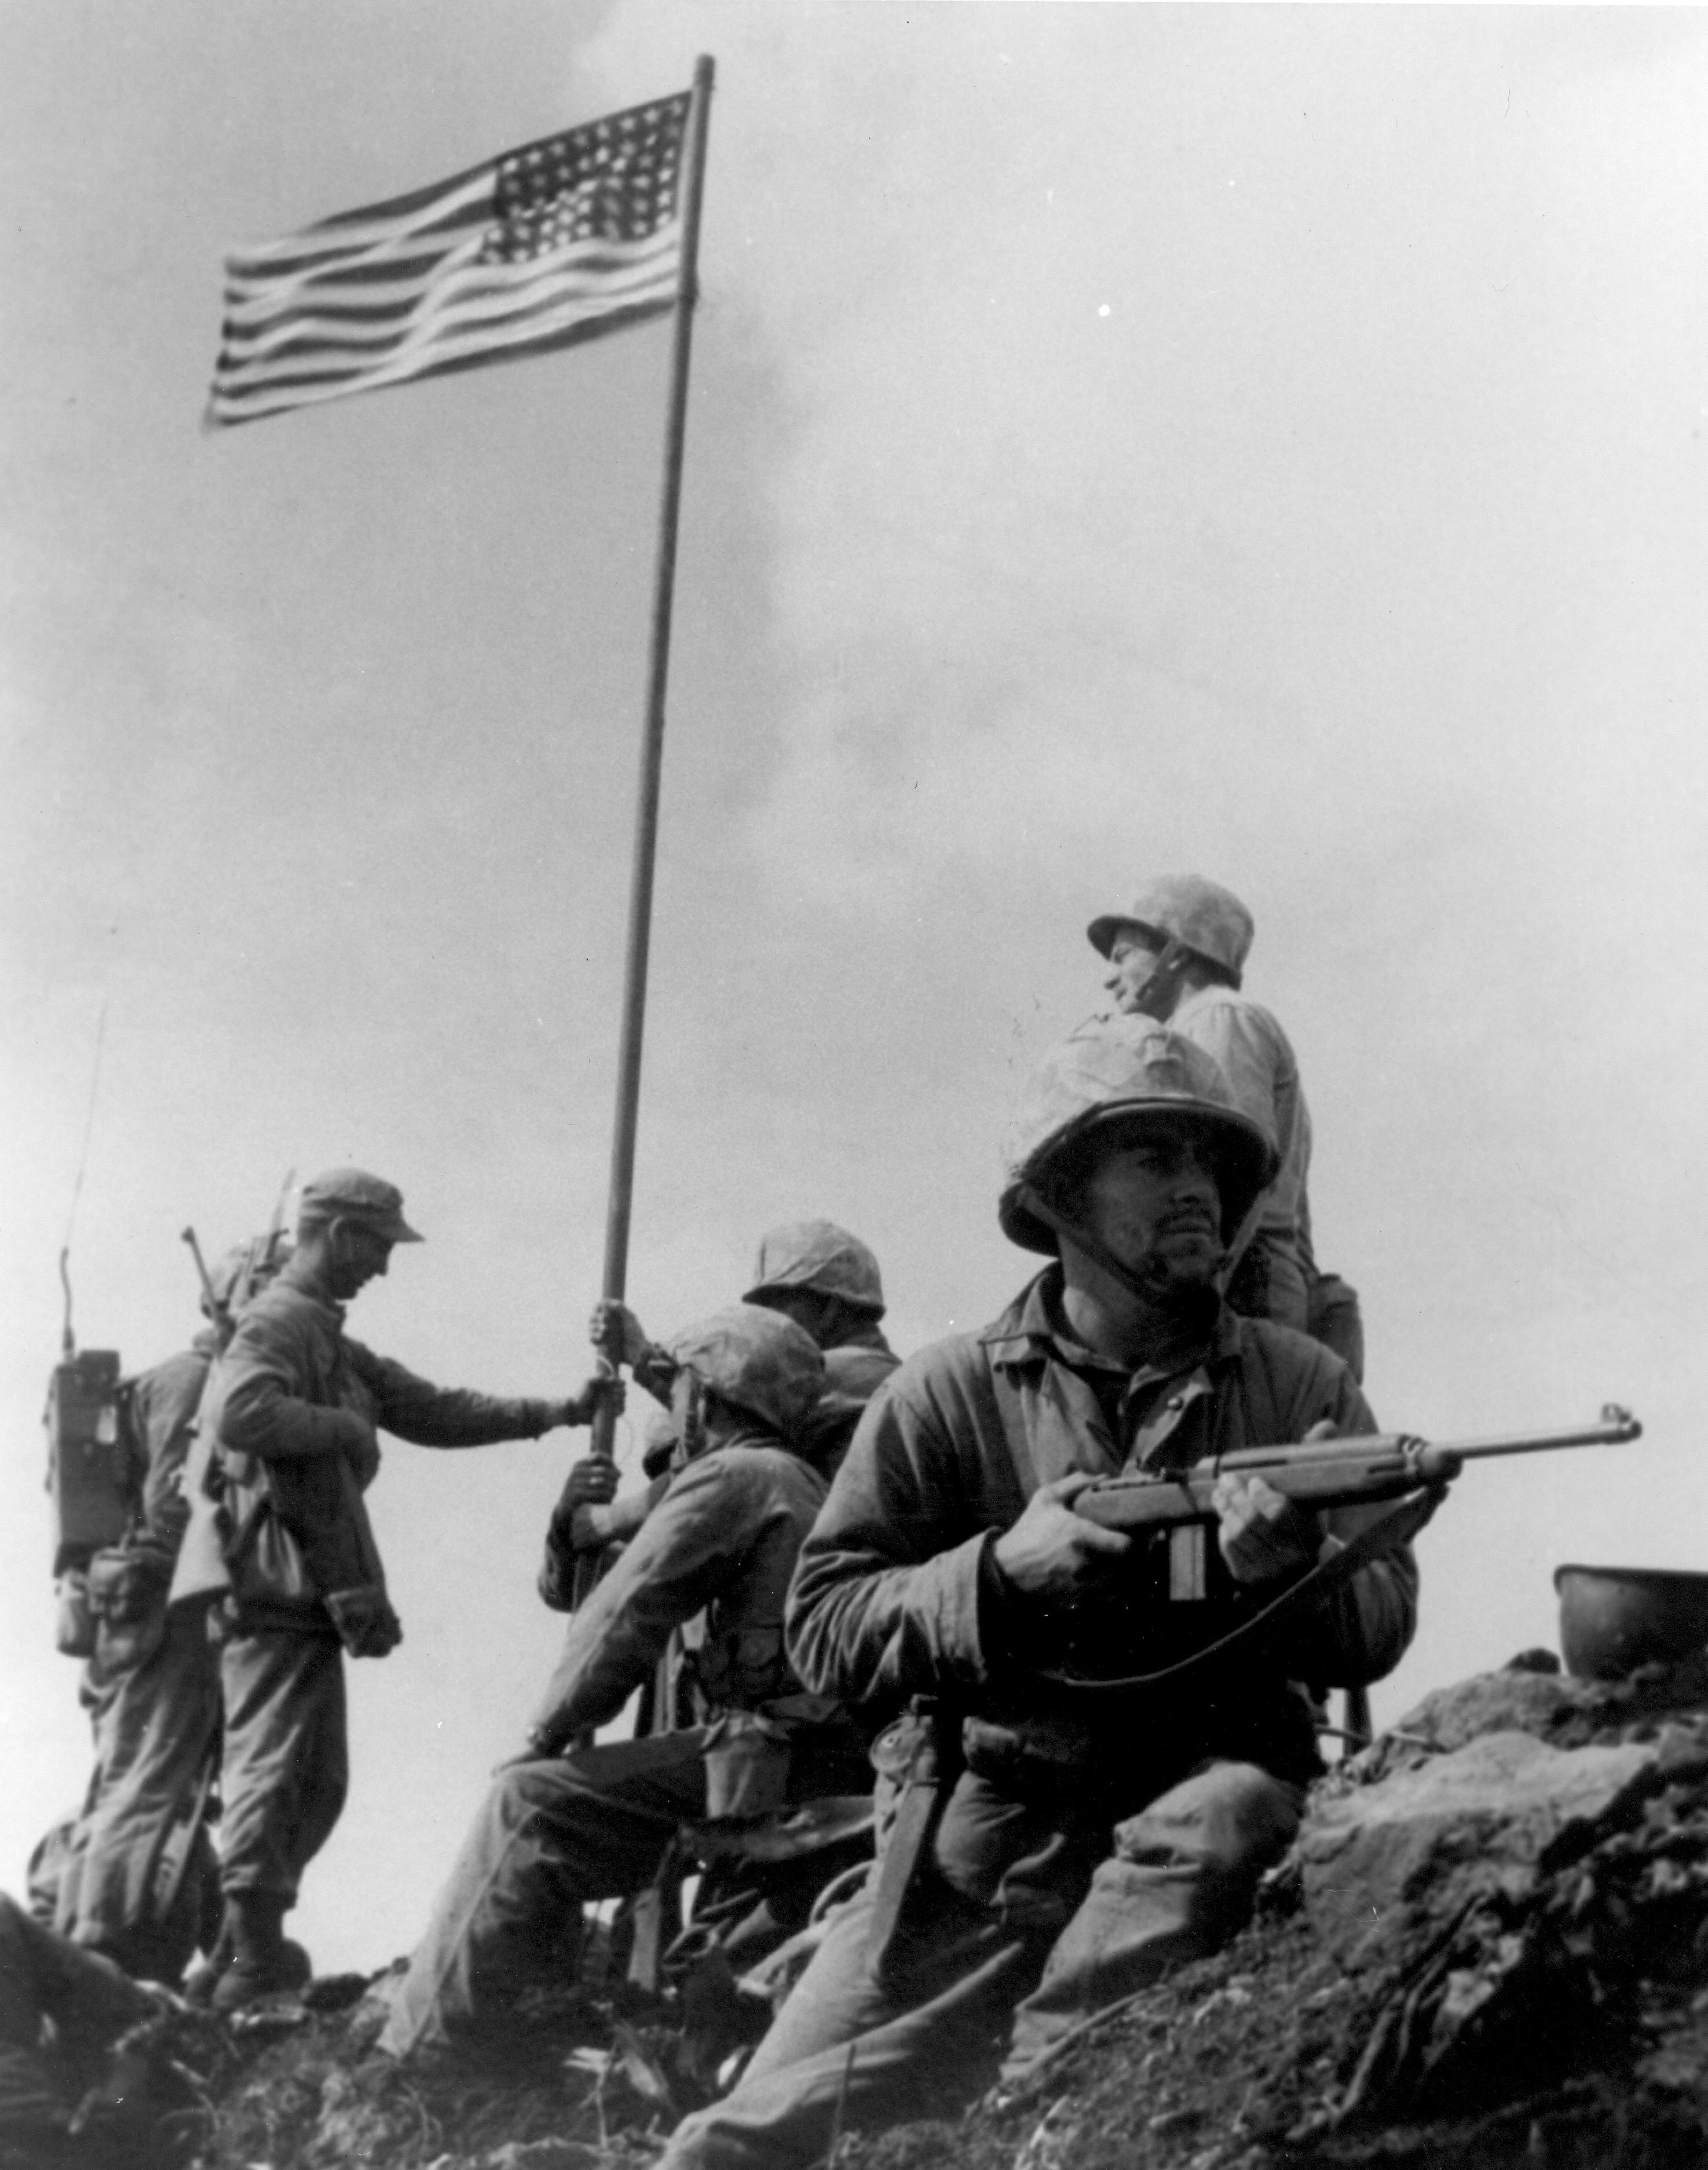 an analysis of the war image old glory goes up on mt suribachi Start studying art history i learn some images used in this set are licensed under the creative old glory goes up on mt suribachi joe rosenthal feb.